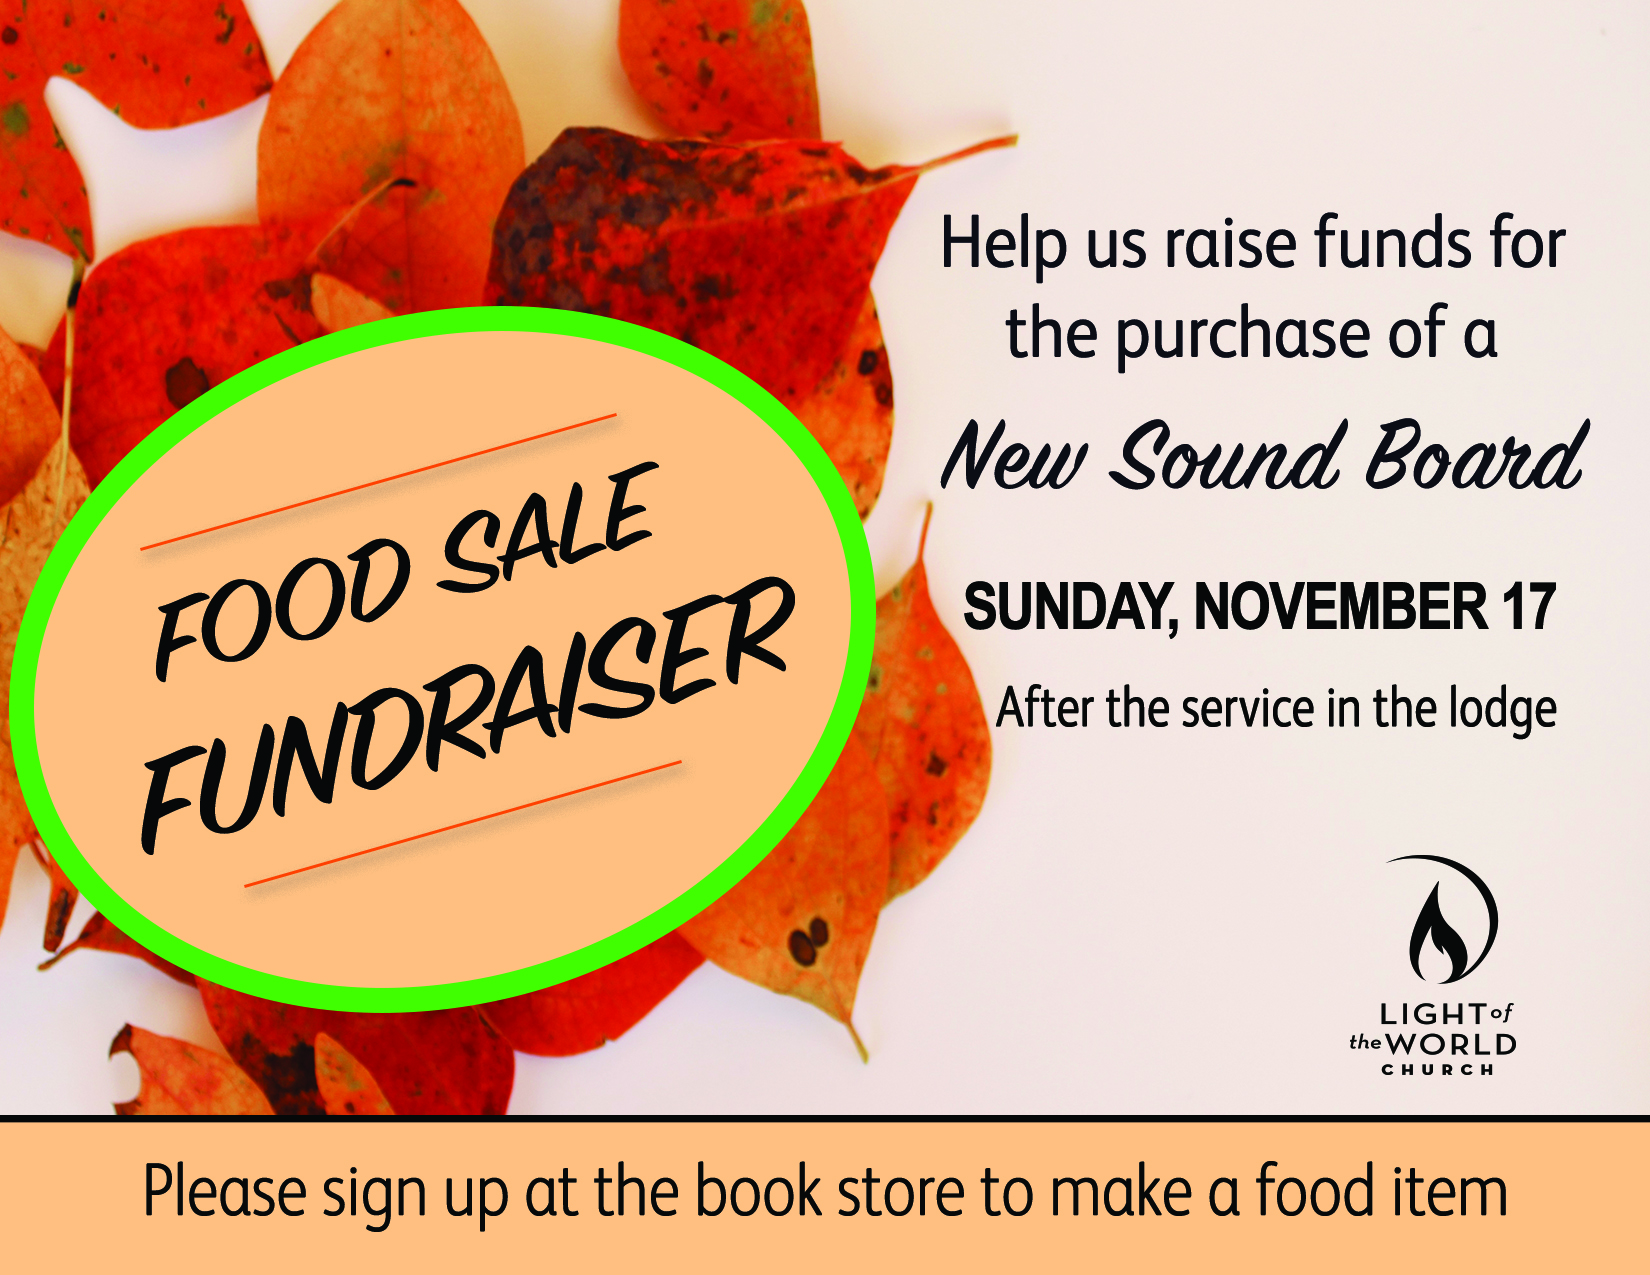 Food Fundraiser Nov 17